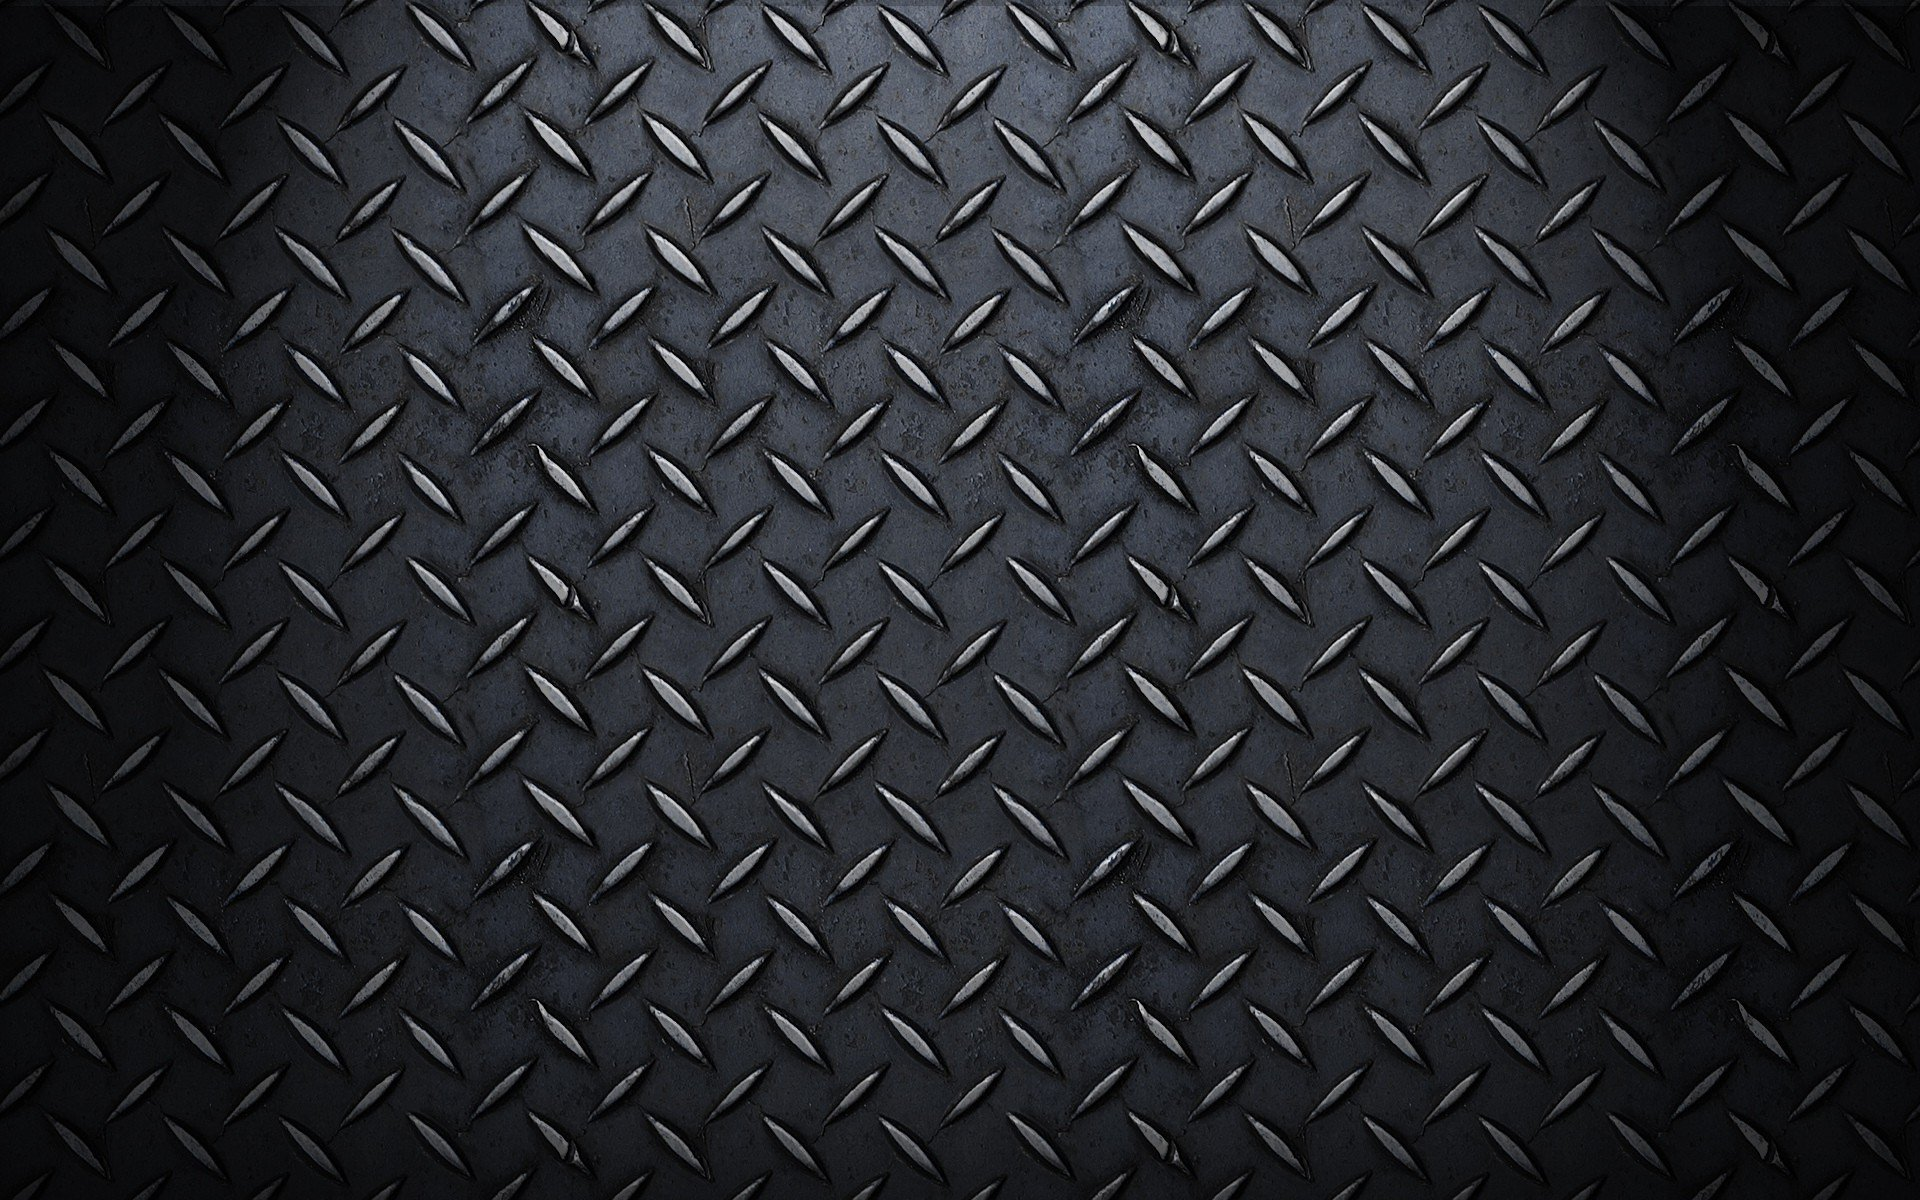 4K Carbon Fiber Wallpaper - WallpaperSafari